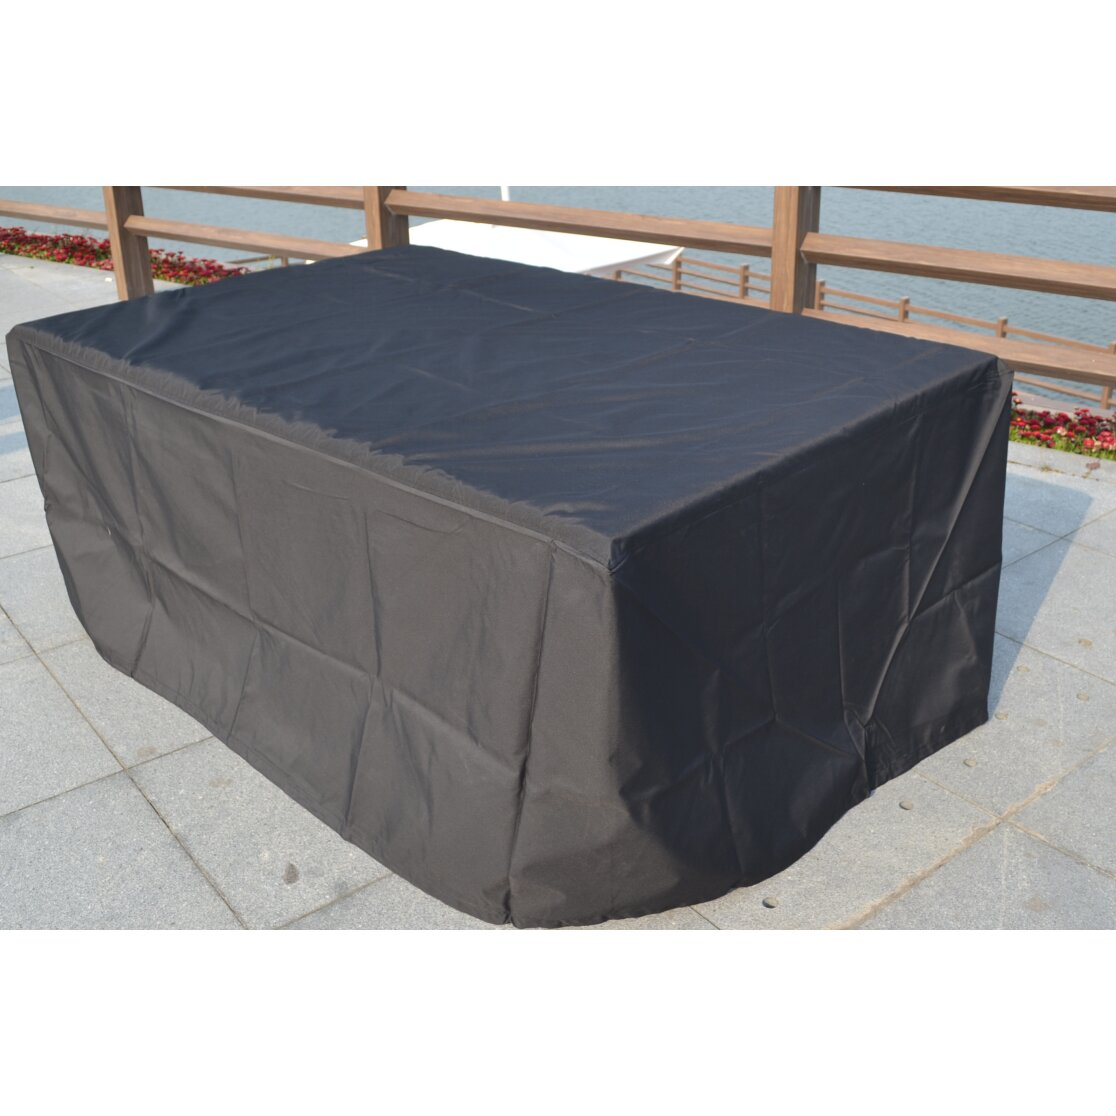 Rebrilliant Rectangular Patio Dining and Sofa Set Cover